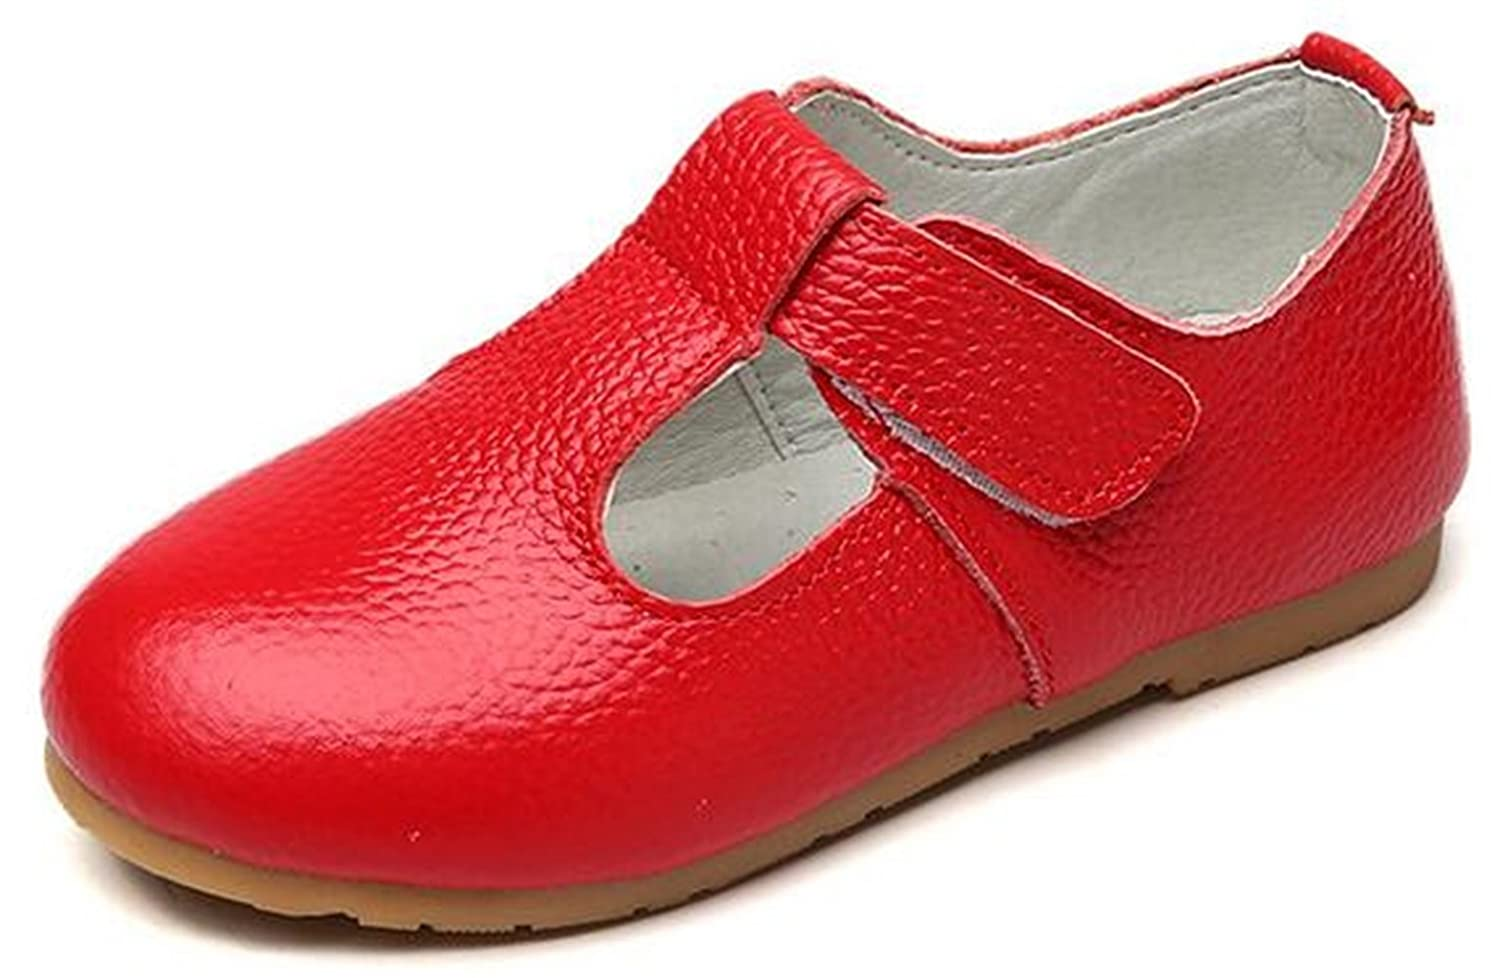 PPXID Girl's Sweet Soft Leather Oxford Shoes D0034